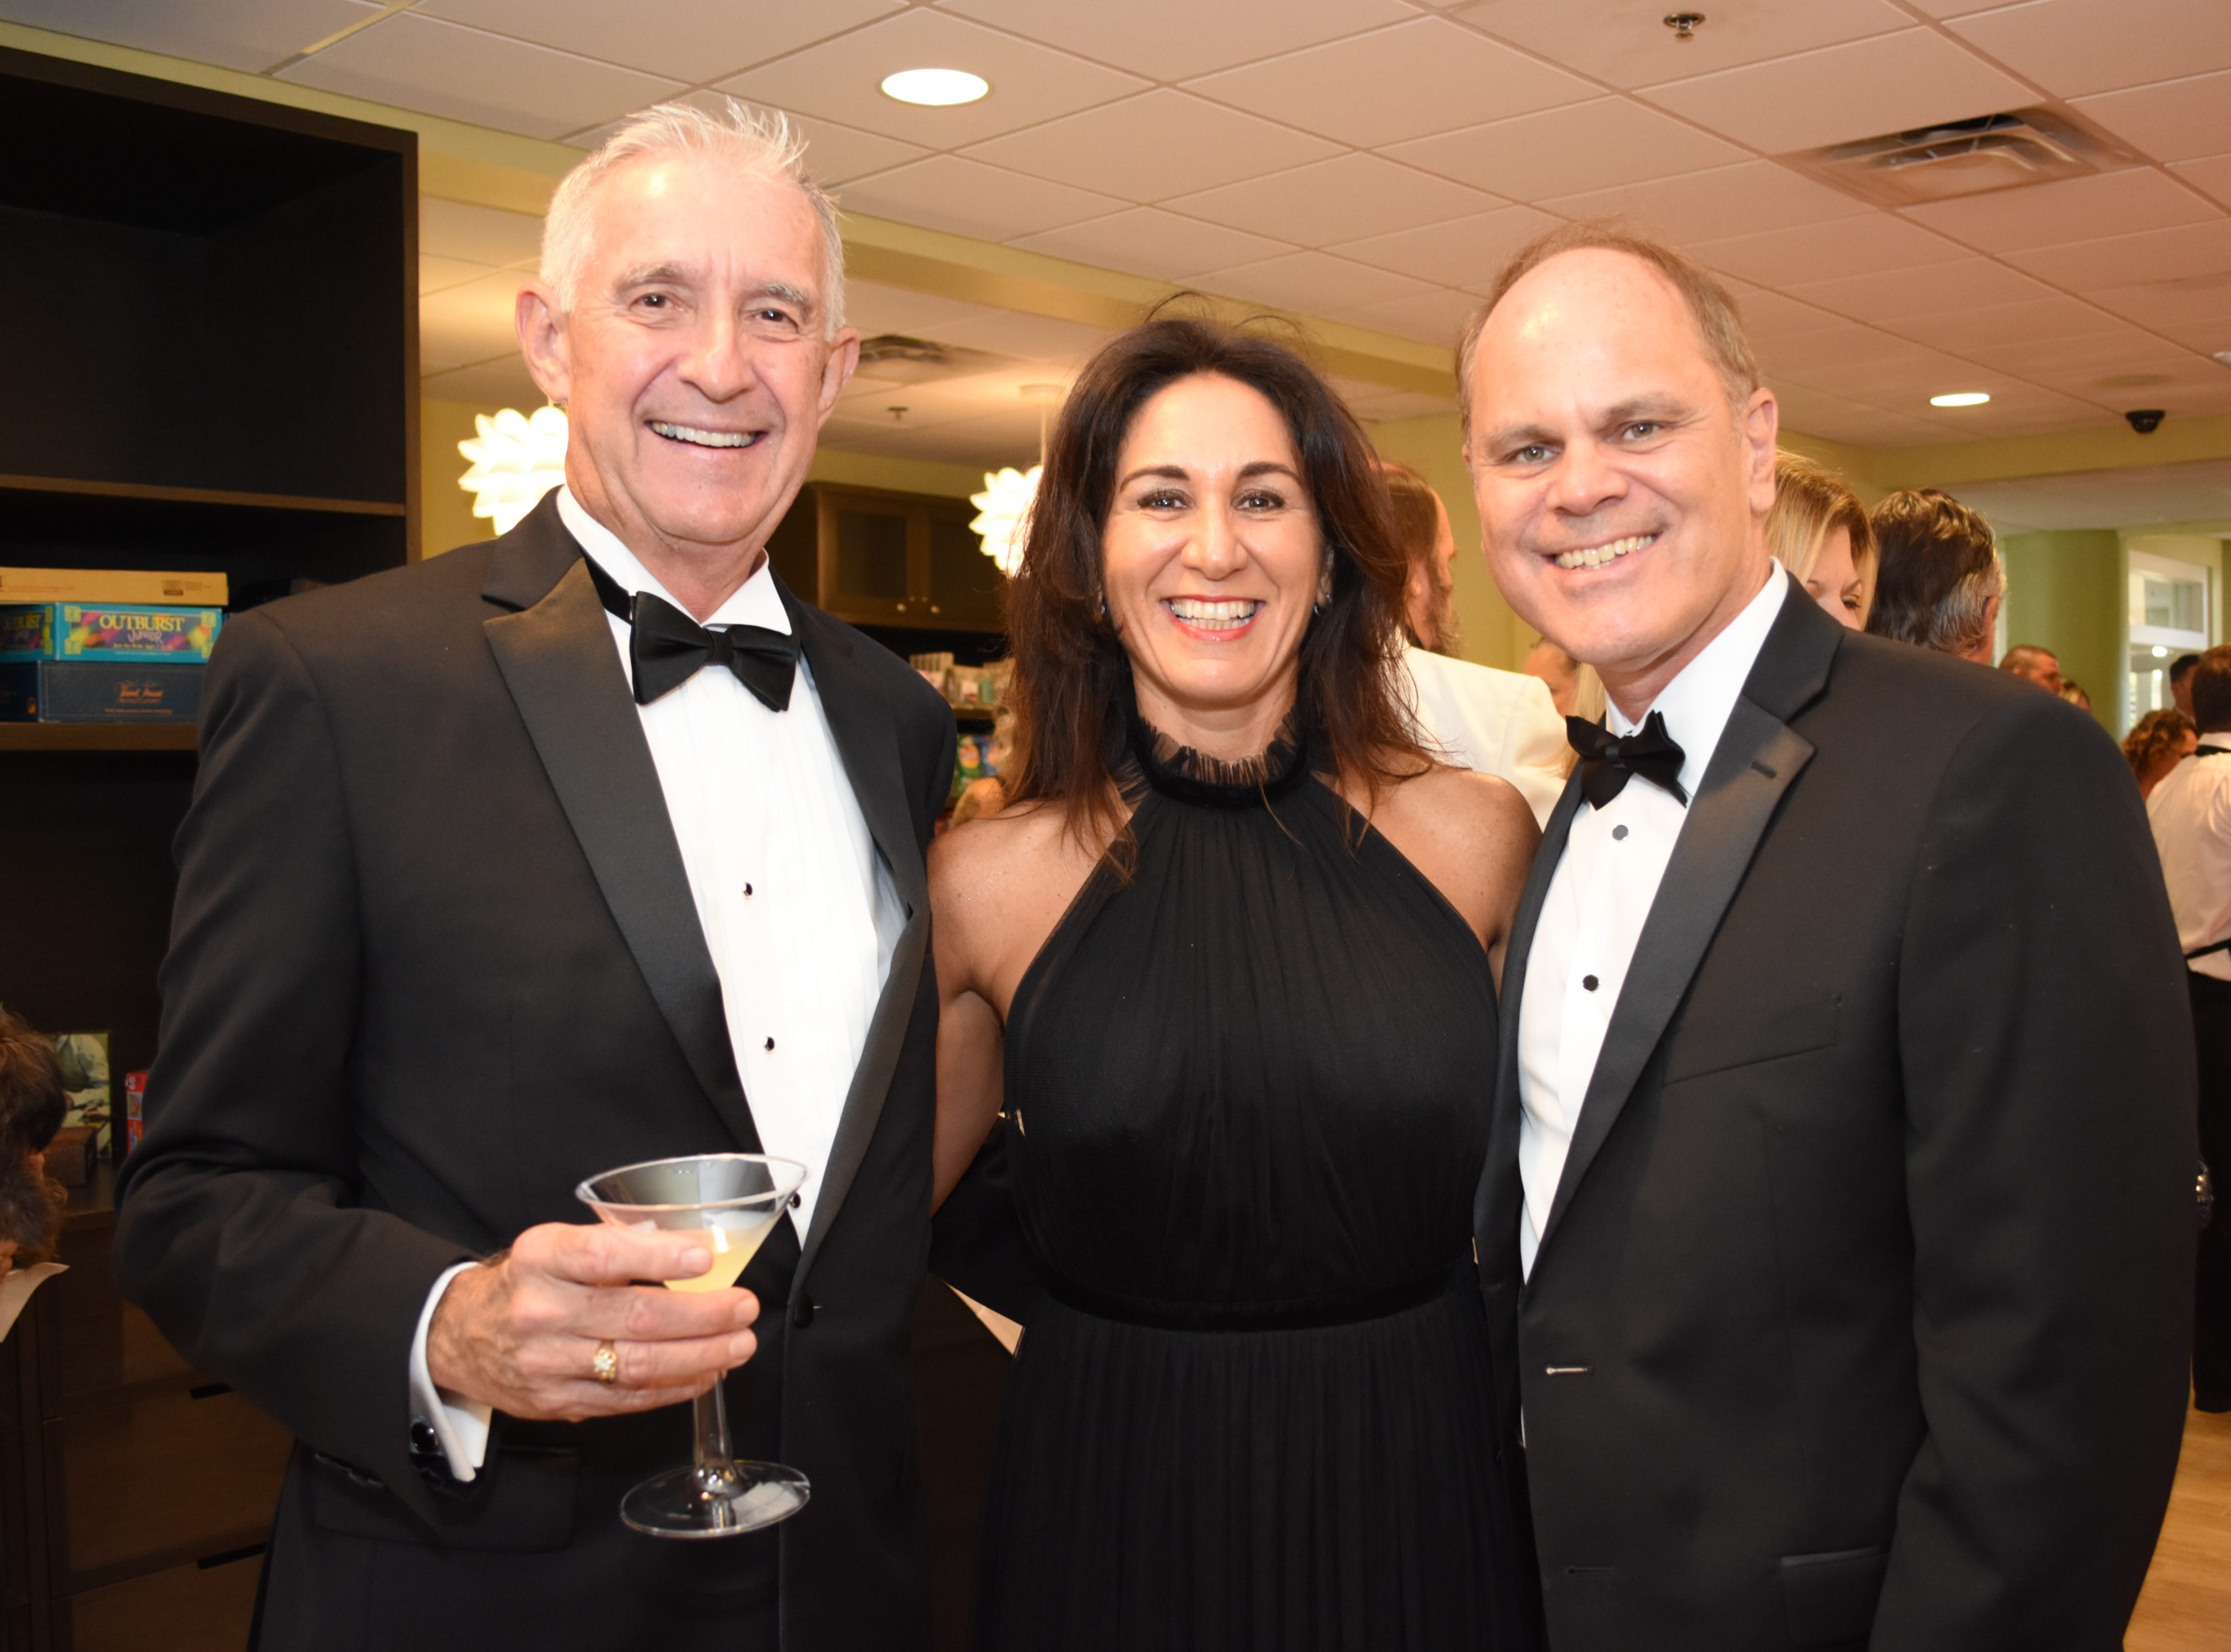 Photos from the 2018 Brevard Humane Society Tuxes & Tails Gala. Arron Lampkin/For FLORIDA TODAY